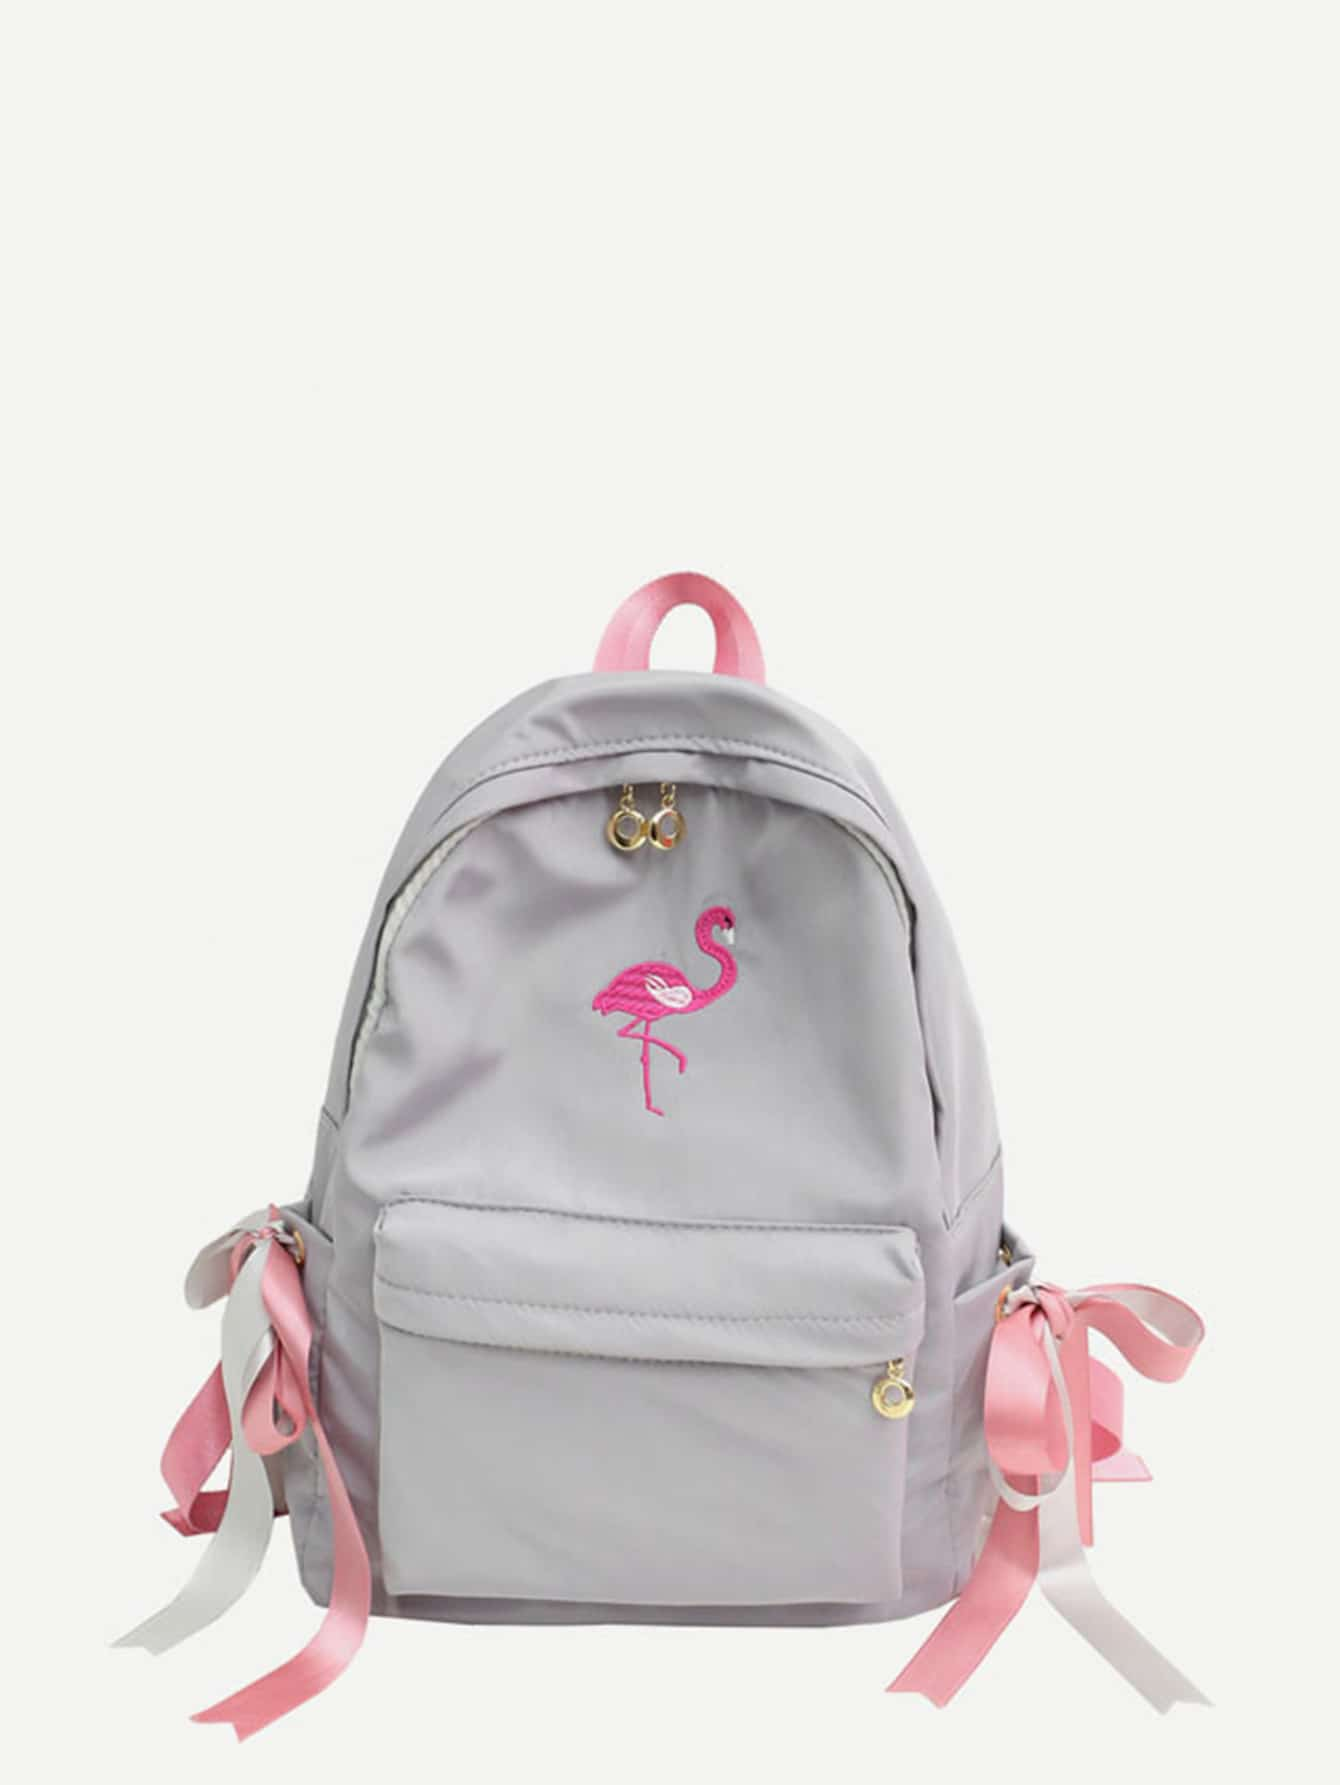 Bow Tie Decor Flamingos Embroidered Backpack